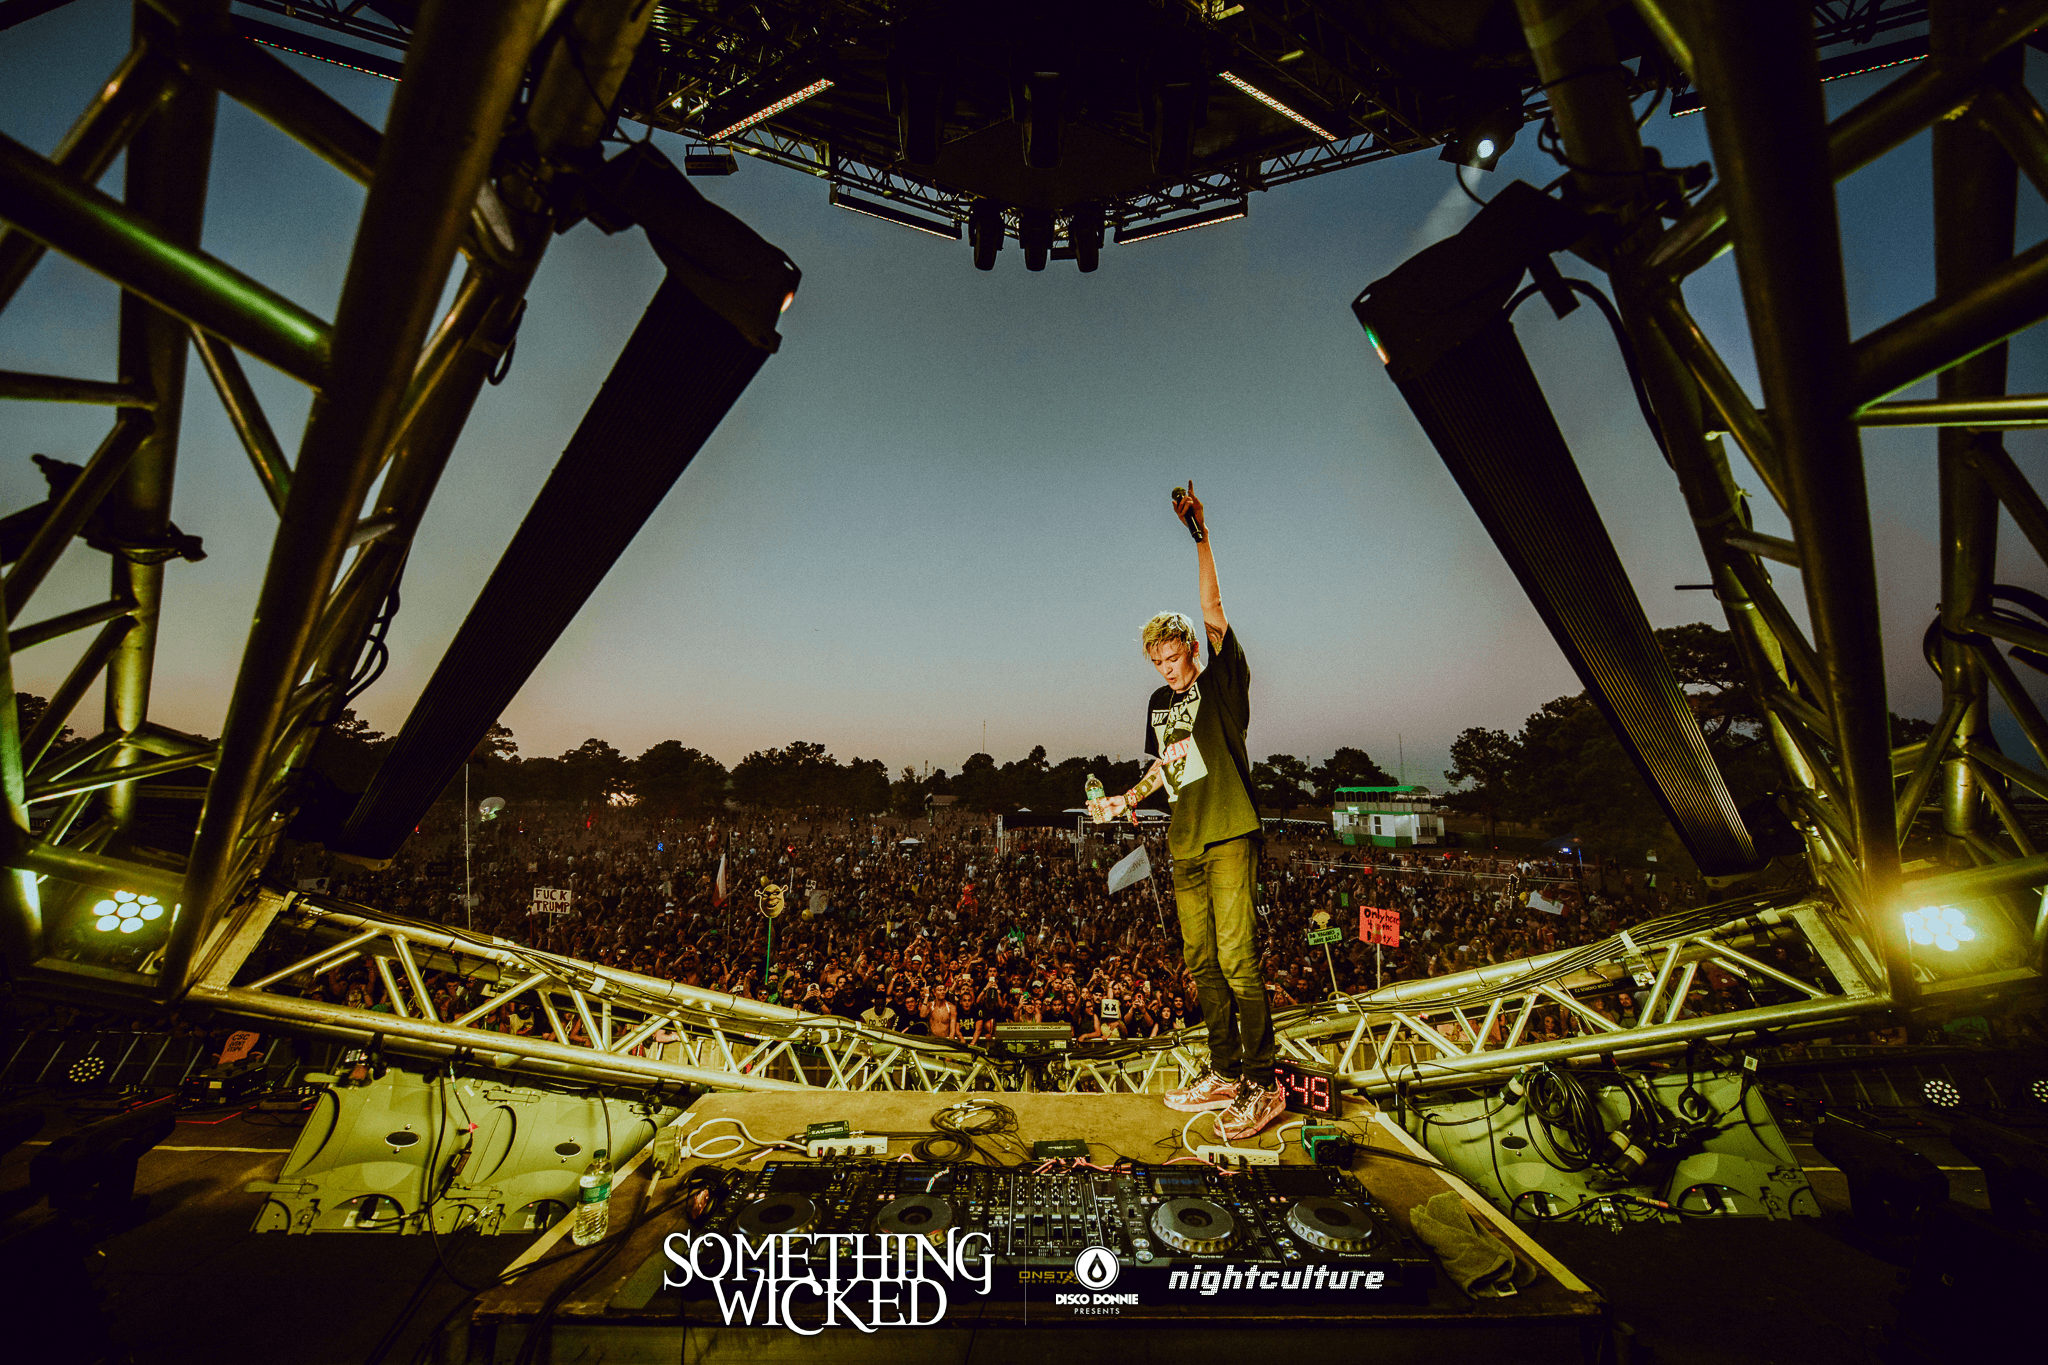 ghastly on stage at sun city